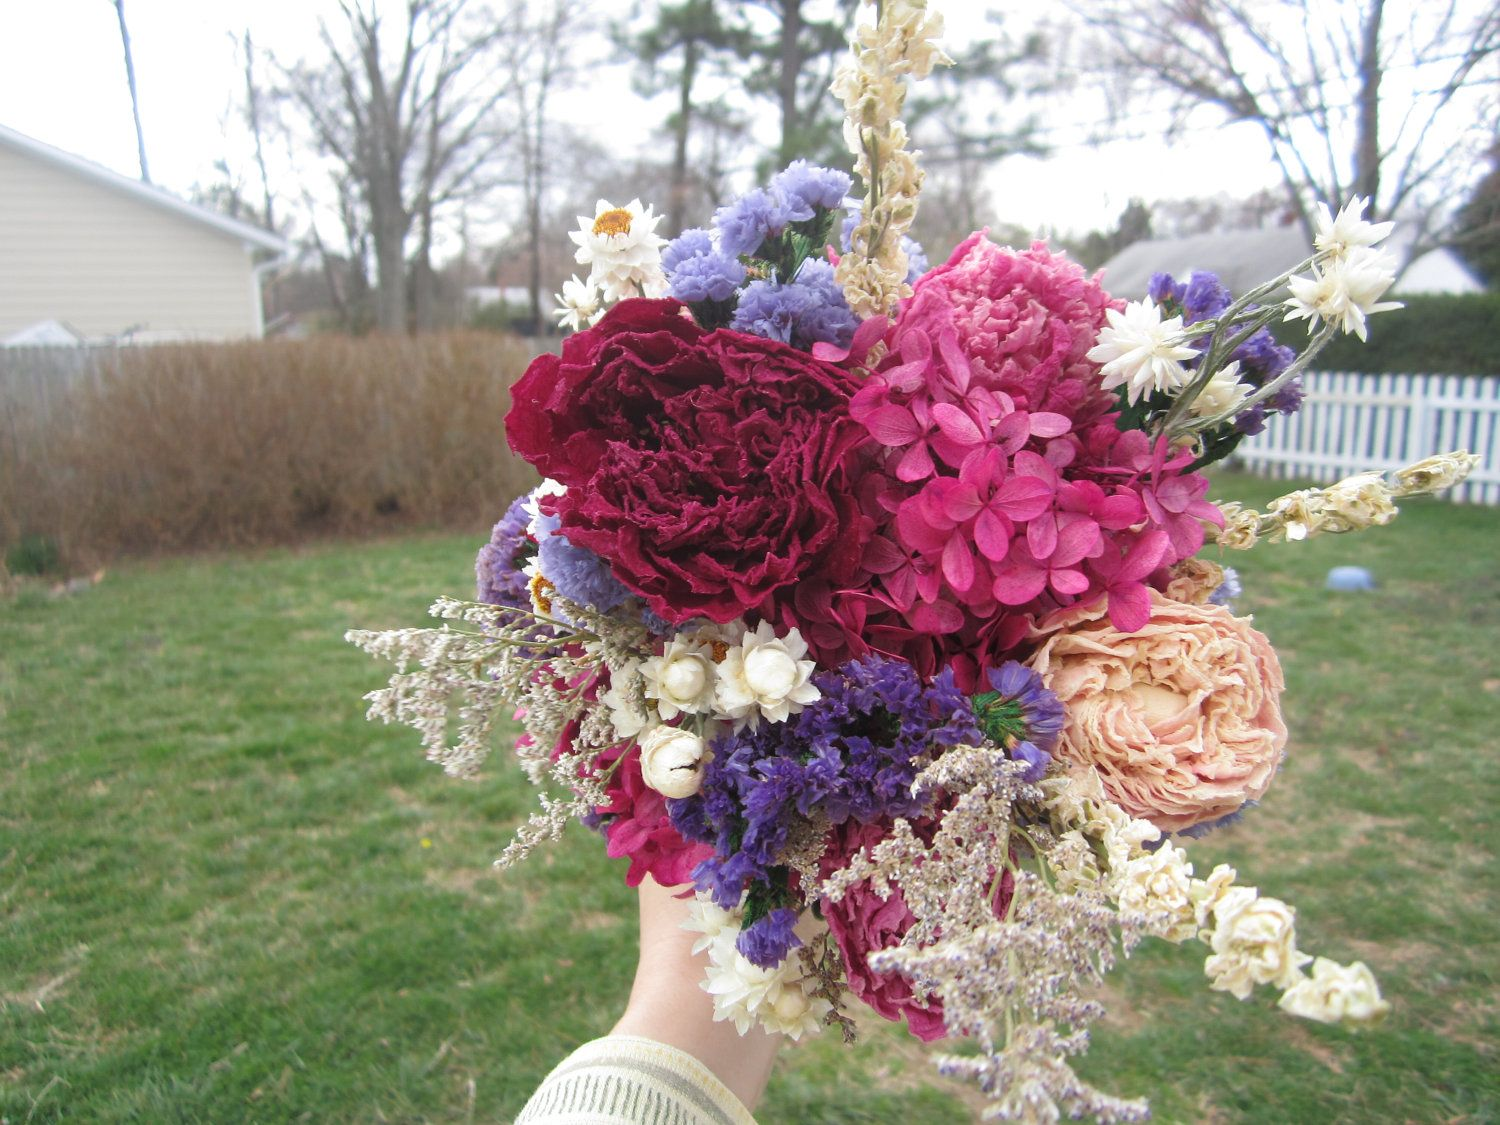 Bridal Bouquet with Naturally Dried Flowers for Country, Farm, Vintage Chic Wedding Eco-friendly Keepsake for your wedding day. $65,00, via Etsy.